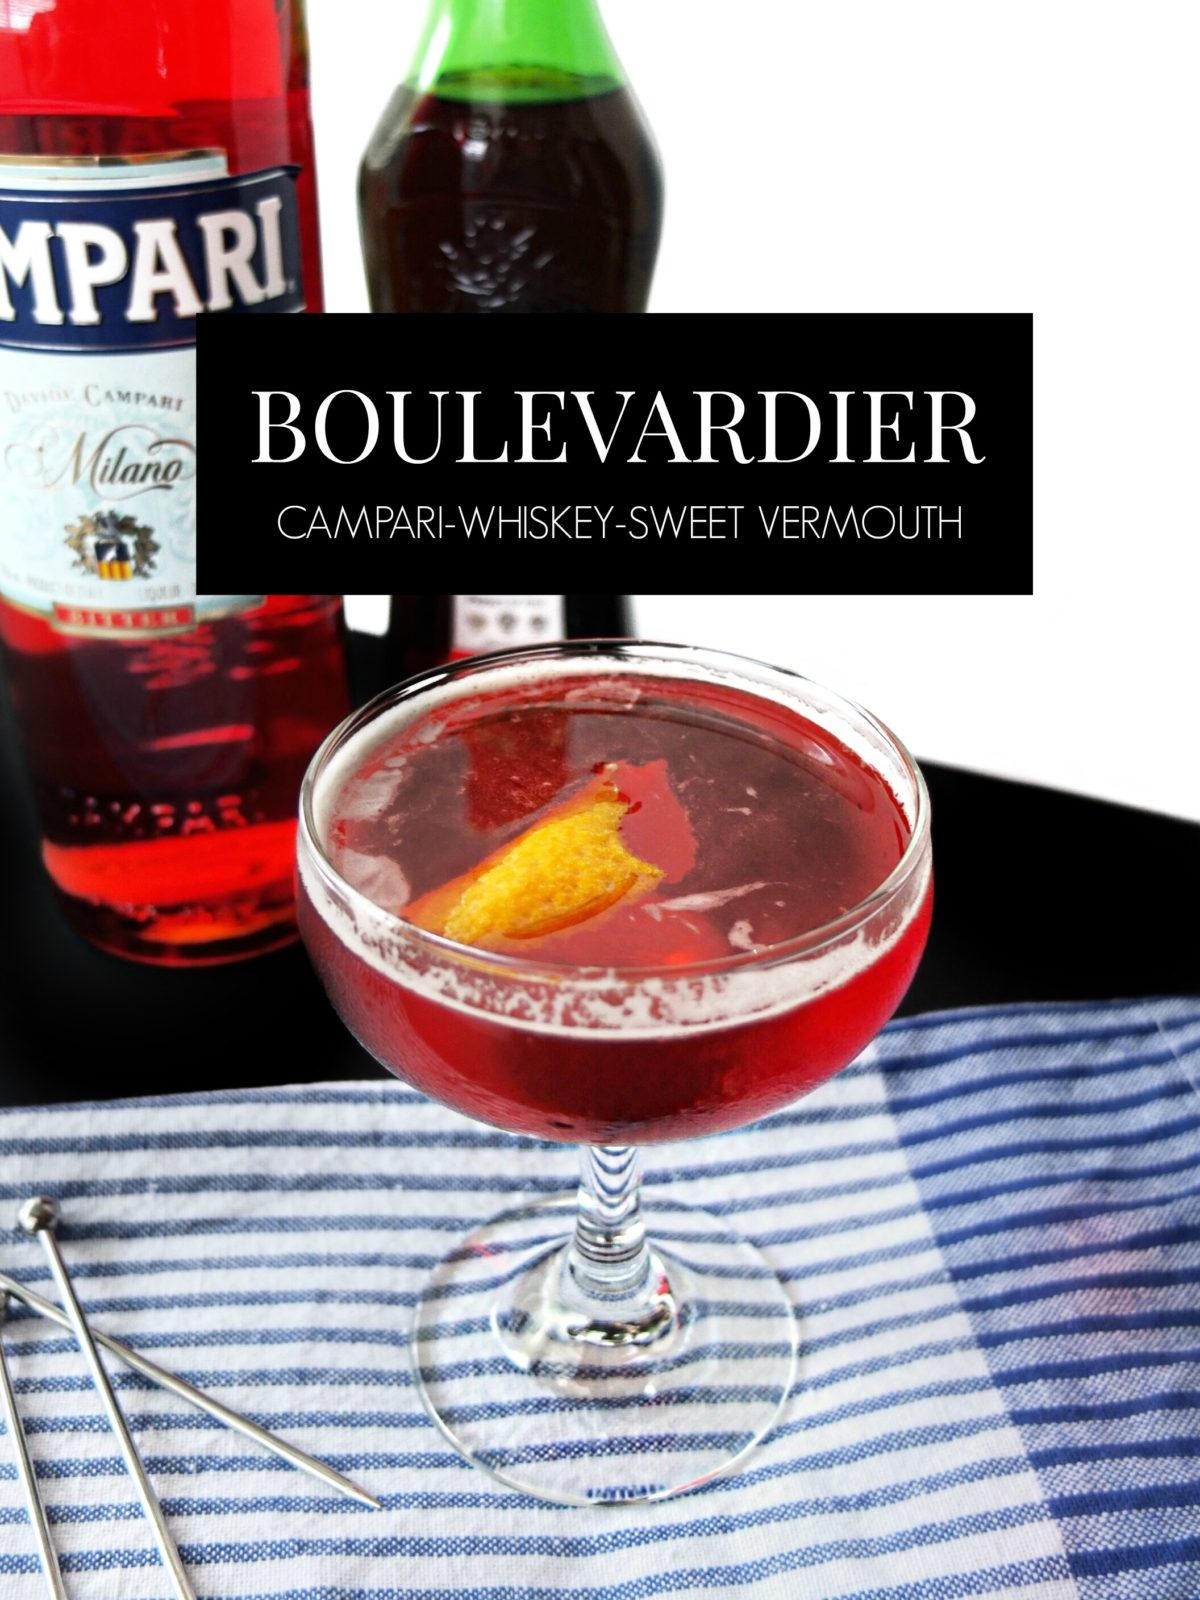 How To Make The Perfect Boulevardier, a classic Campari and Whiskey cocktail.